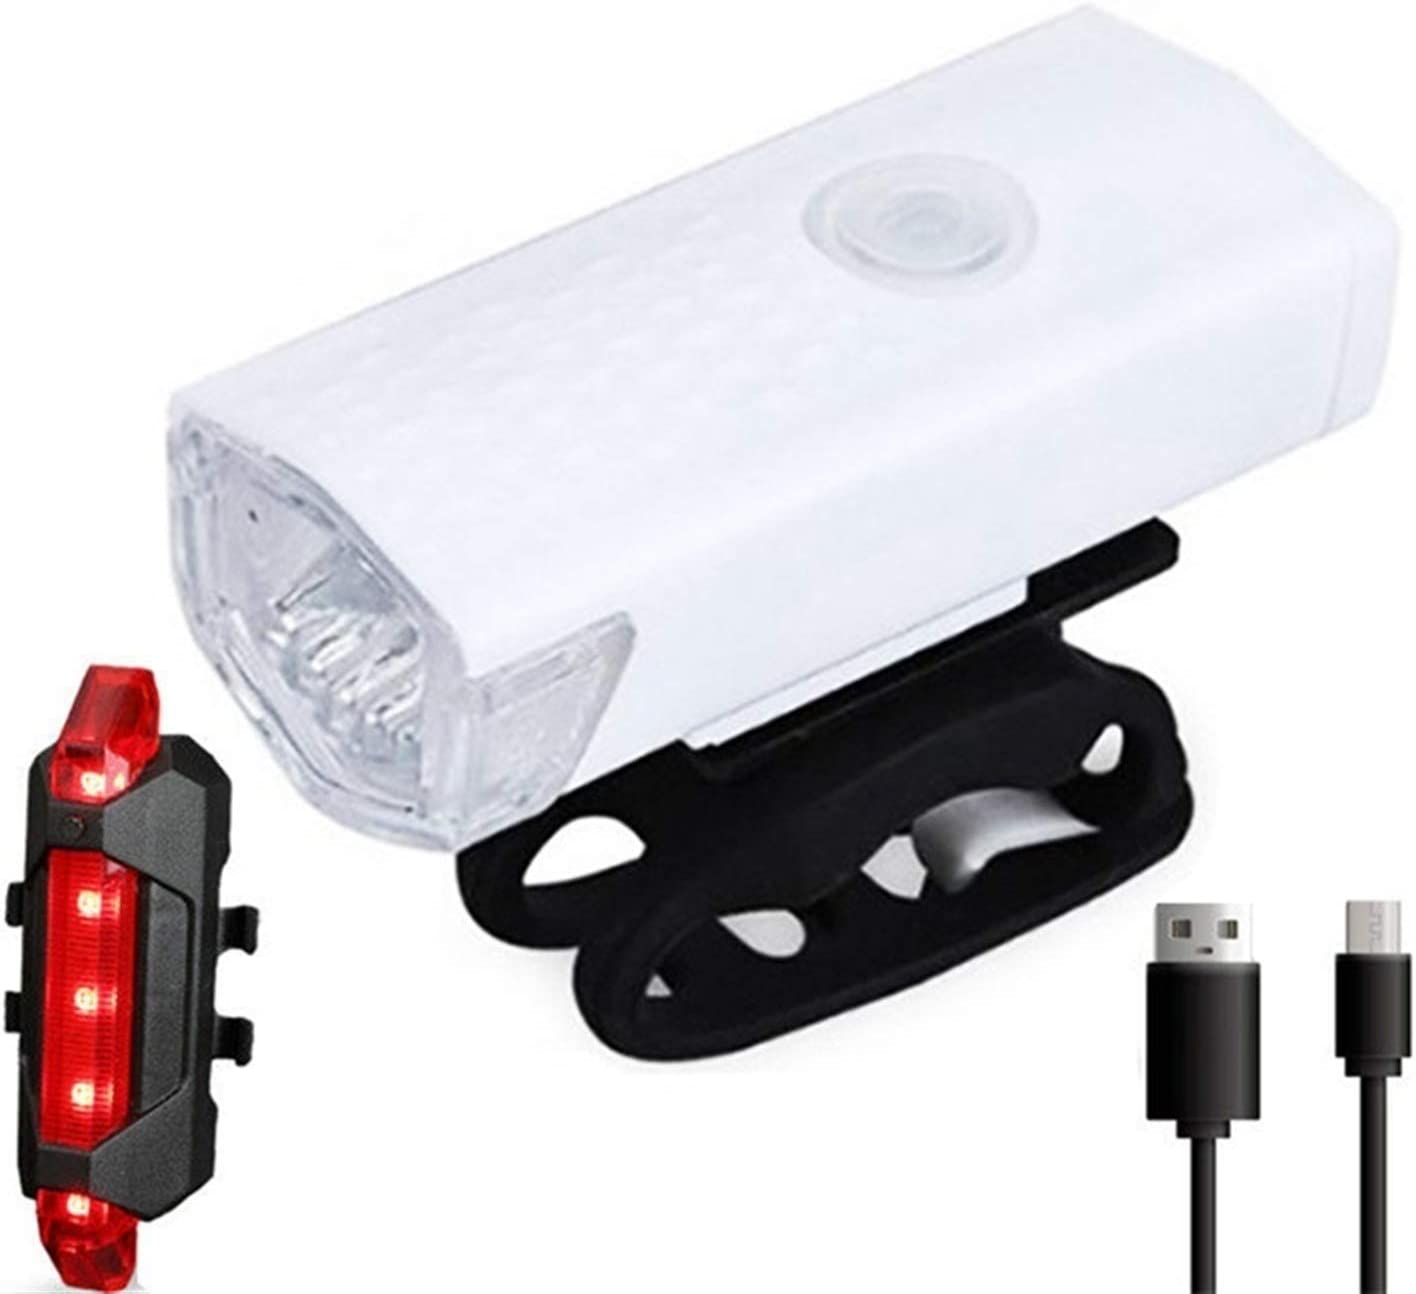 DWCA USB Bike Lights Bicycle Safety Cycling Great Bombing new work interest Rechargeable